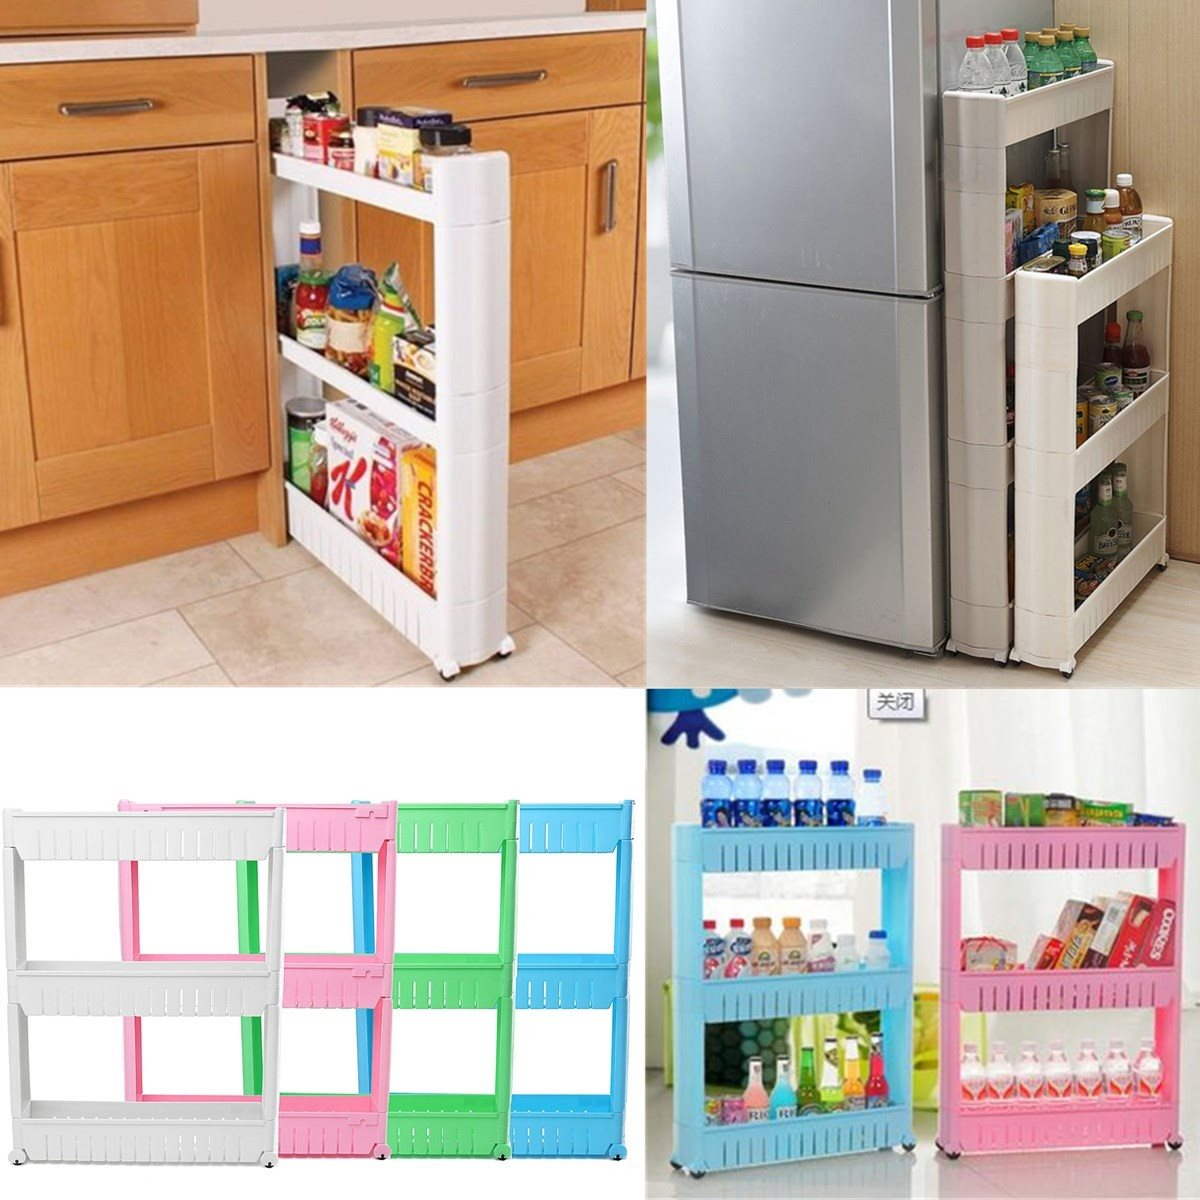 Delightful 3 Tier Movable Kitchen Slide Out Trolley Spice Rack Detachable Rolling  Plastic Organizer Shelf Home Bathroom Sundries Storage In Storage Holders U0026  Racks ...